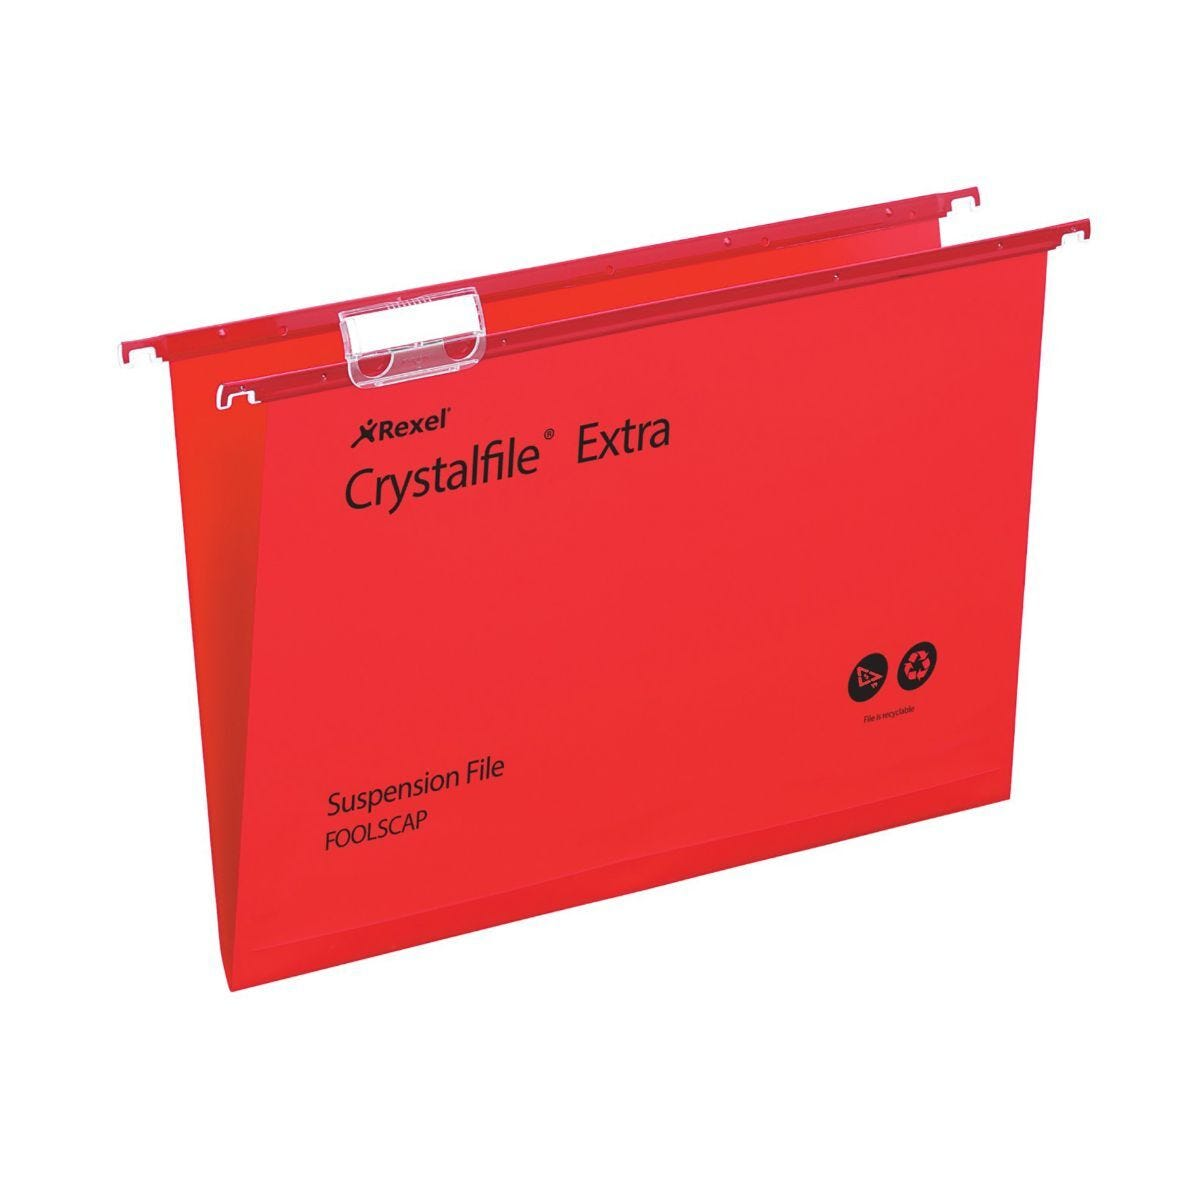 Rexel Crystalfile Extra Foolscap Suspension File 15mm Pack of 25 Red